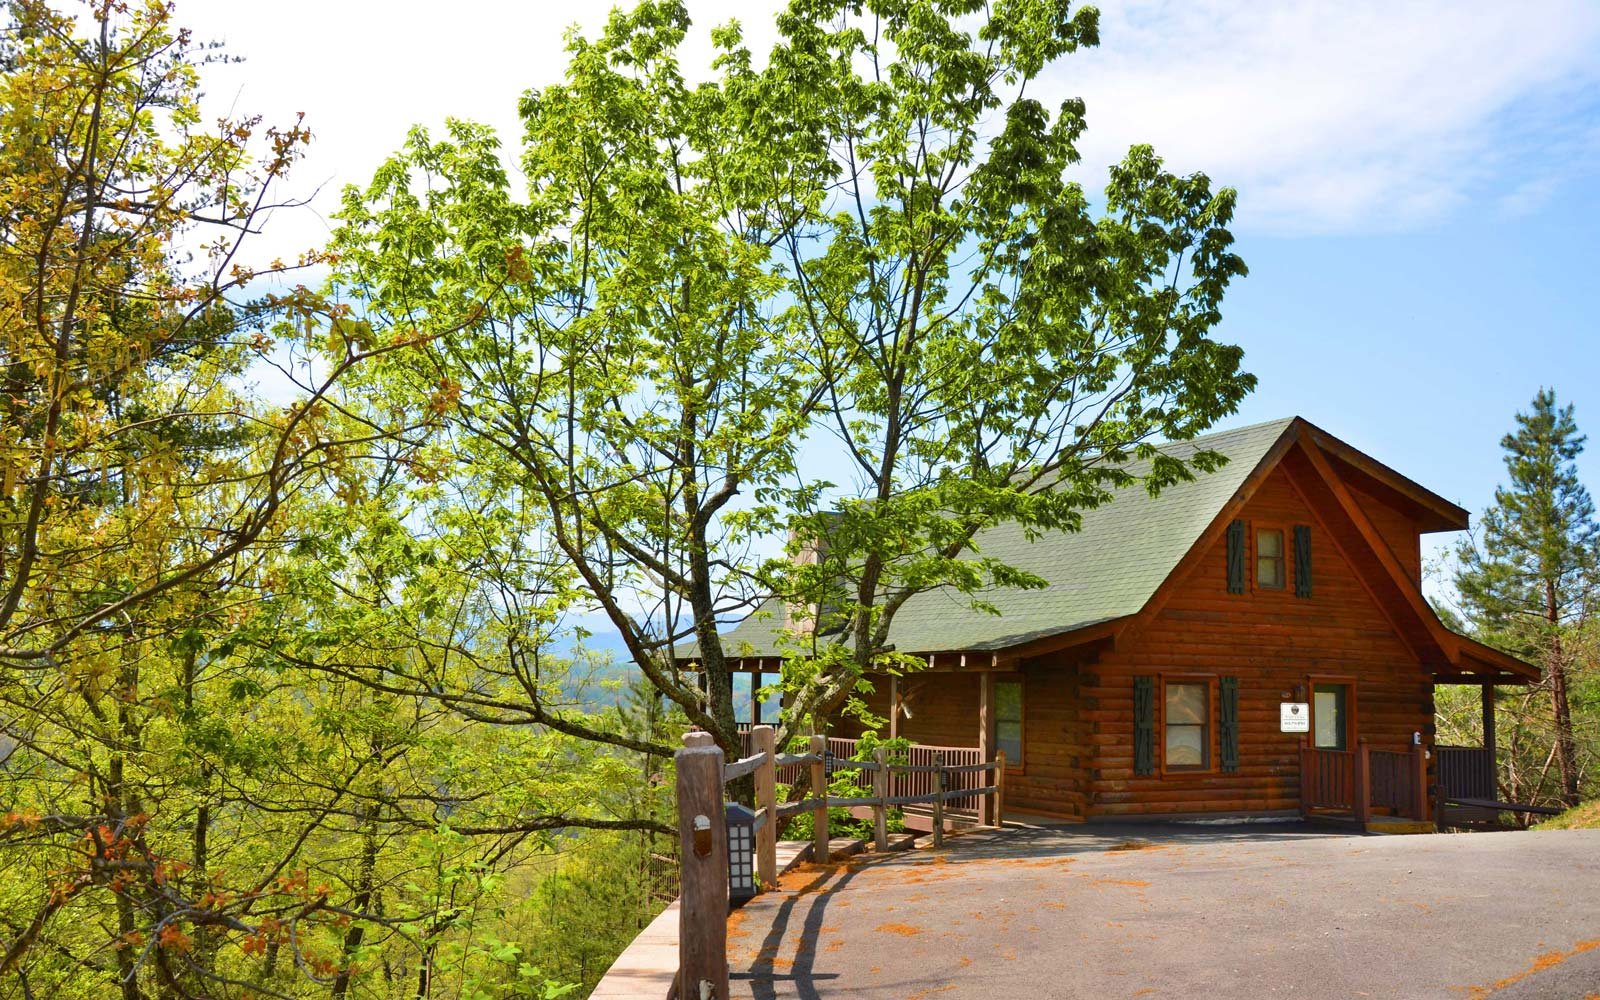 cabins rentals smoky indoor friendly pet tennessee tn cabin interior cheap in s pool gatlburg gatlinburg vacation mountains rental